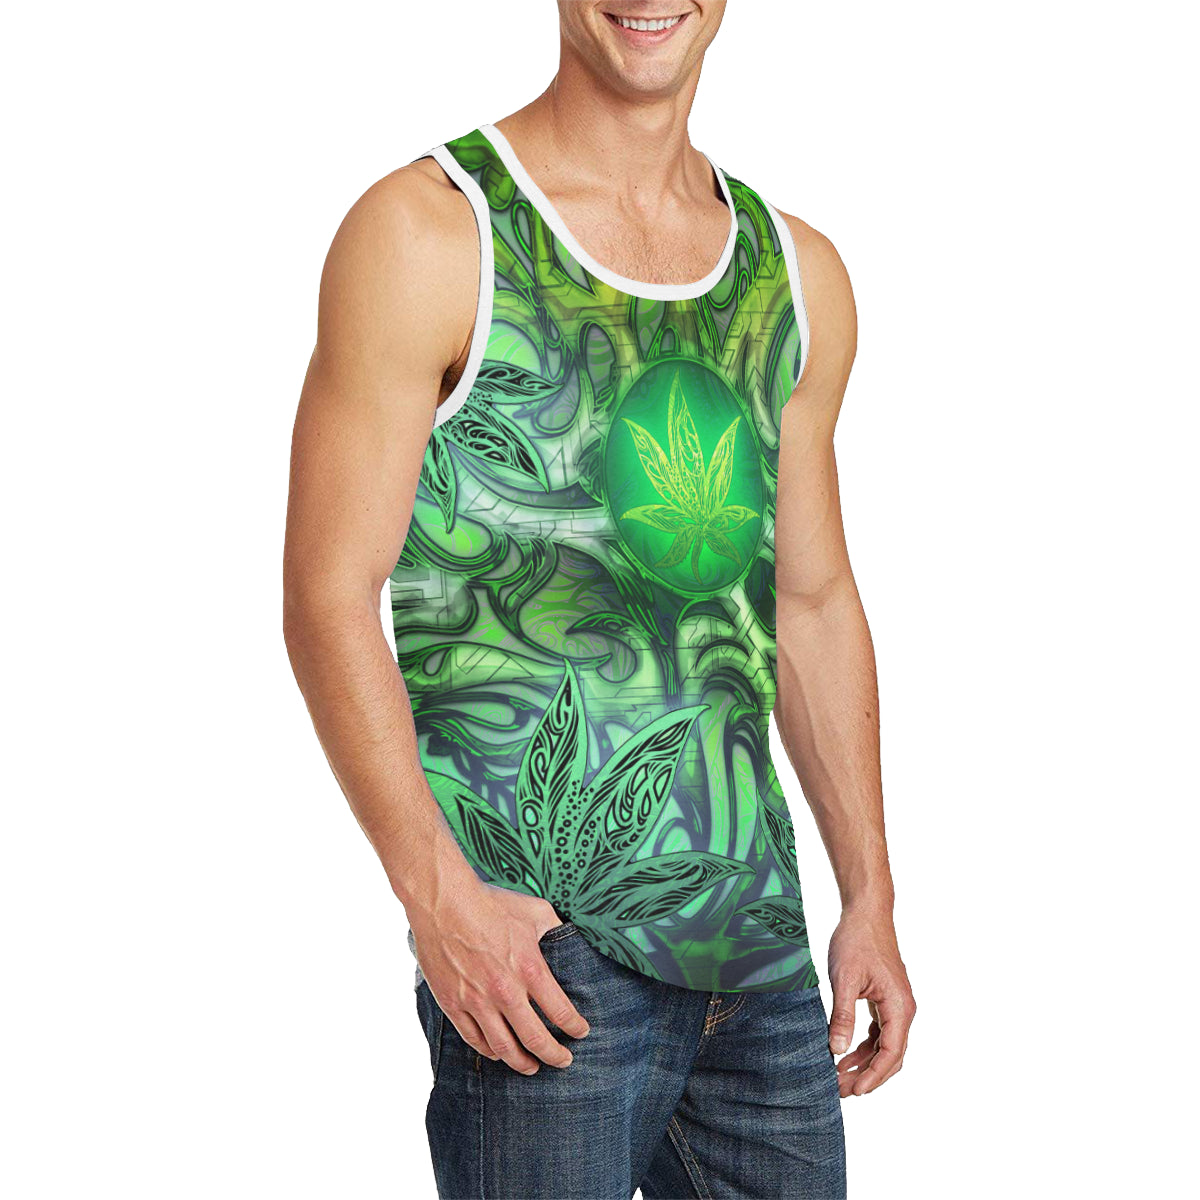 Dank Bud Green Men's All Over Print Tank Top